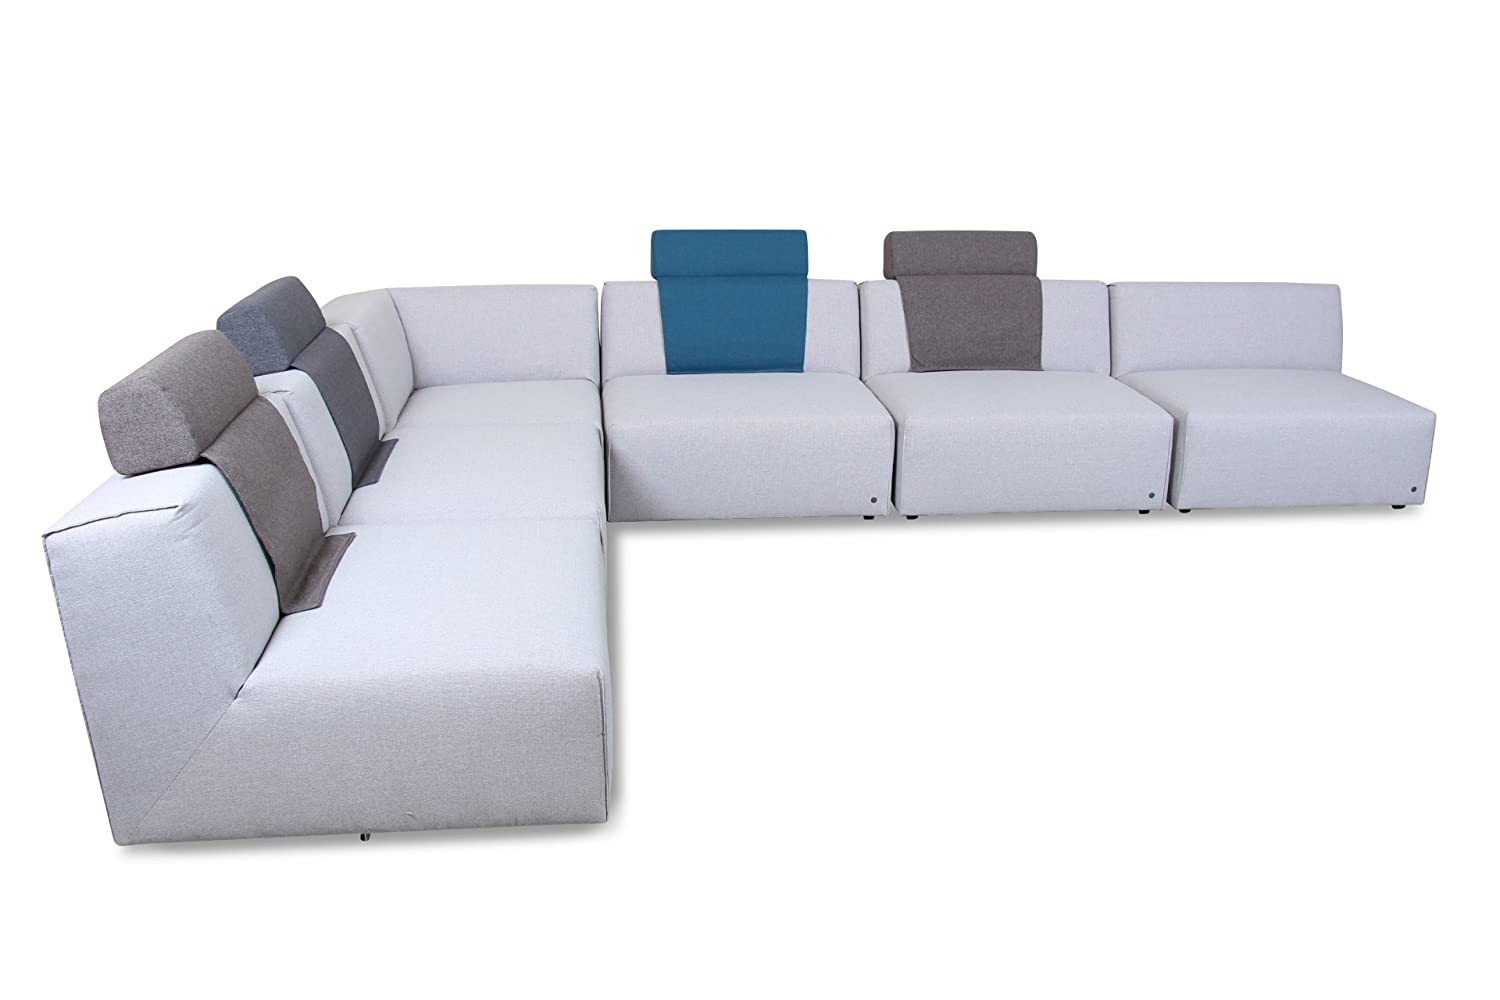 sofa tom tailor rundecke 2er ecke 3er lazy webstoff grau online kaufen. Black Bedroom Furniture Sets. Home Design Ideas